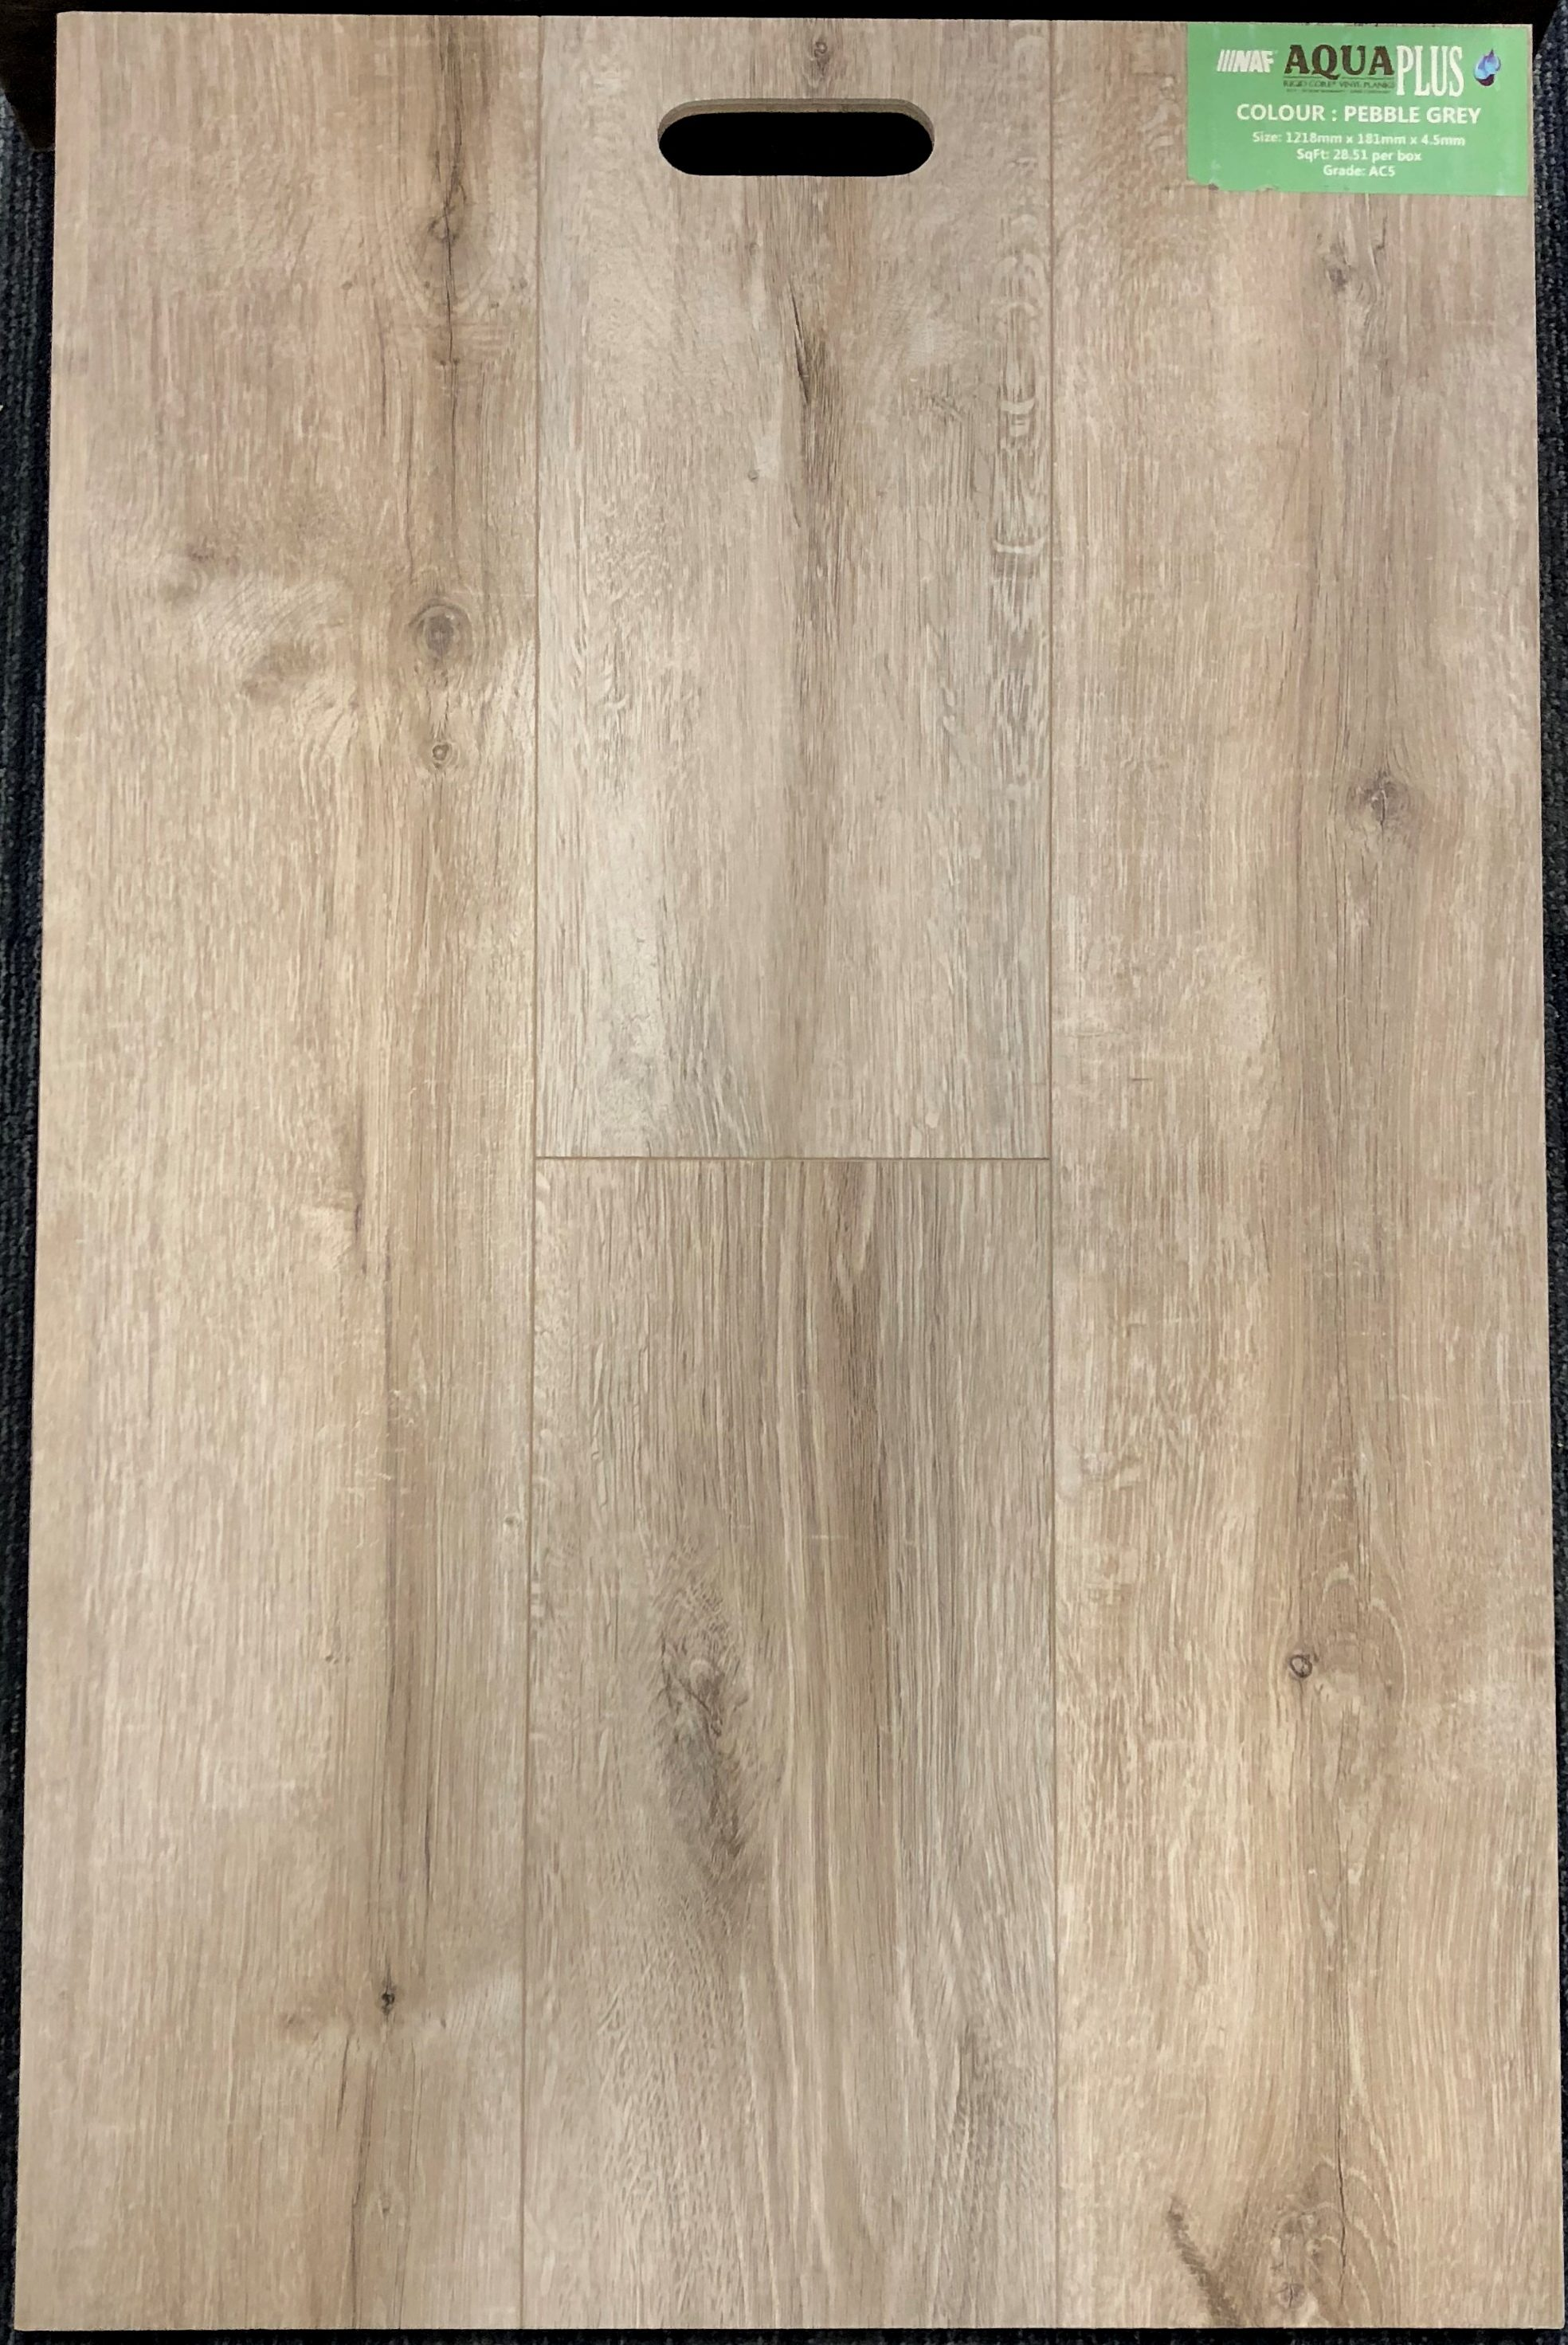 Pebble Grey NAF Aquaplus 4.5mm Vinyl Flooring Rigid Core - Drop Clic - 0.3mm Wear Layer Image